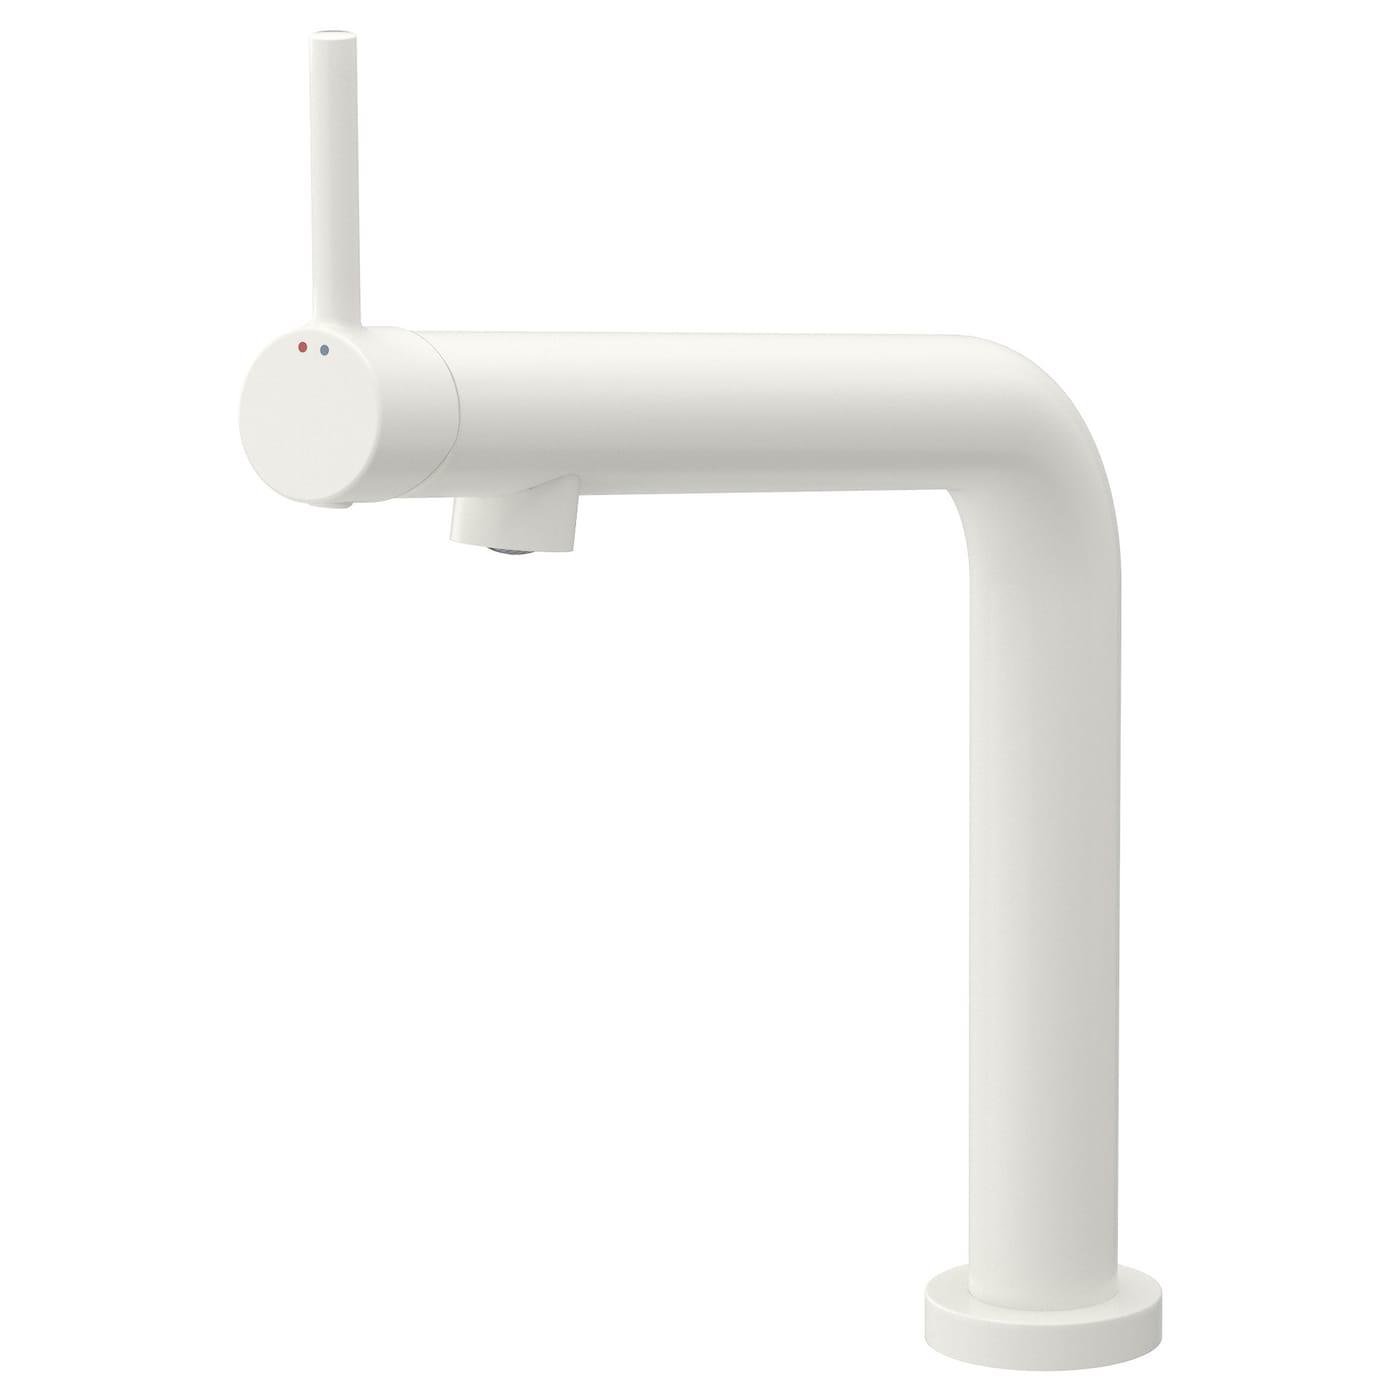 Kitchen Taps - Kitchen Mixer Taps - IKEA